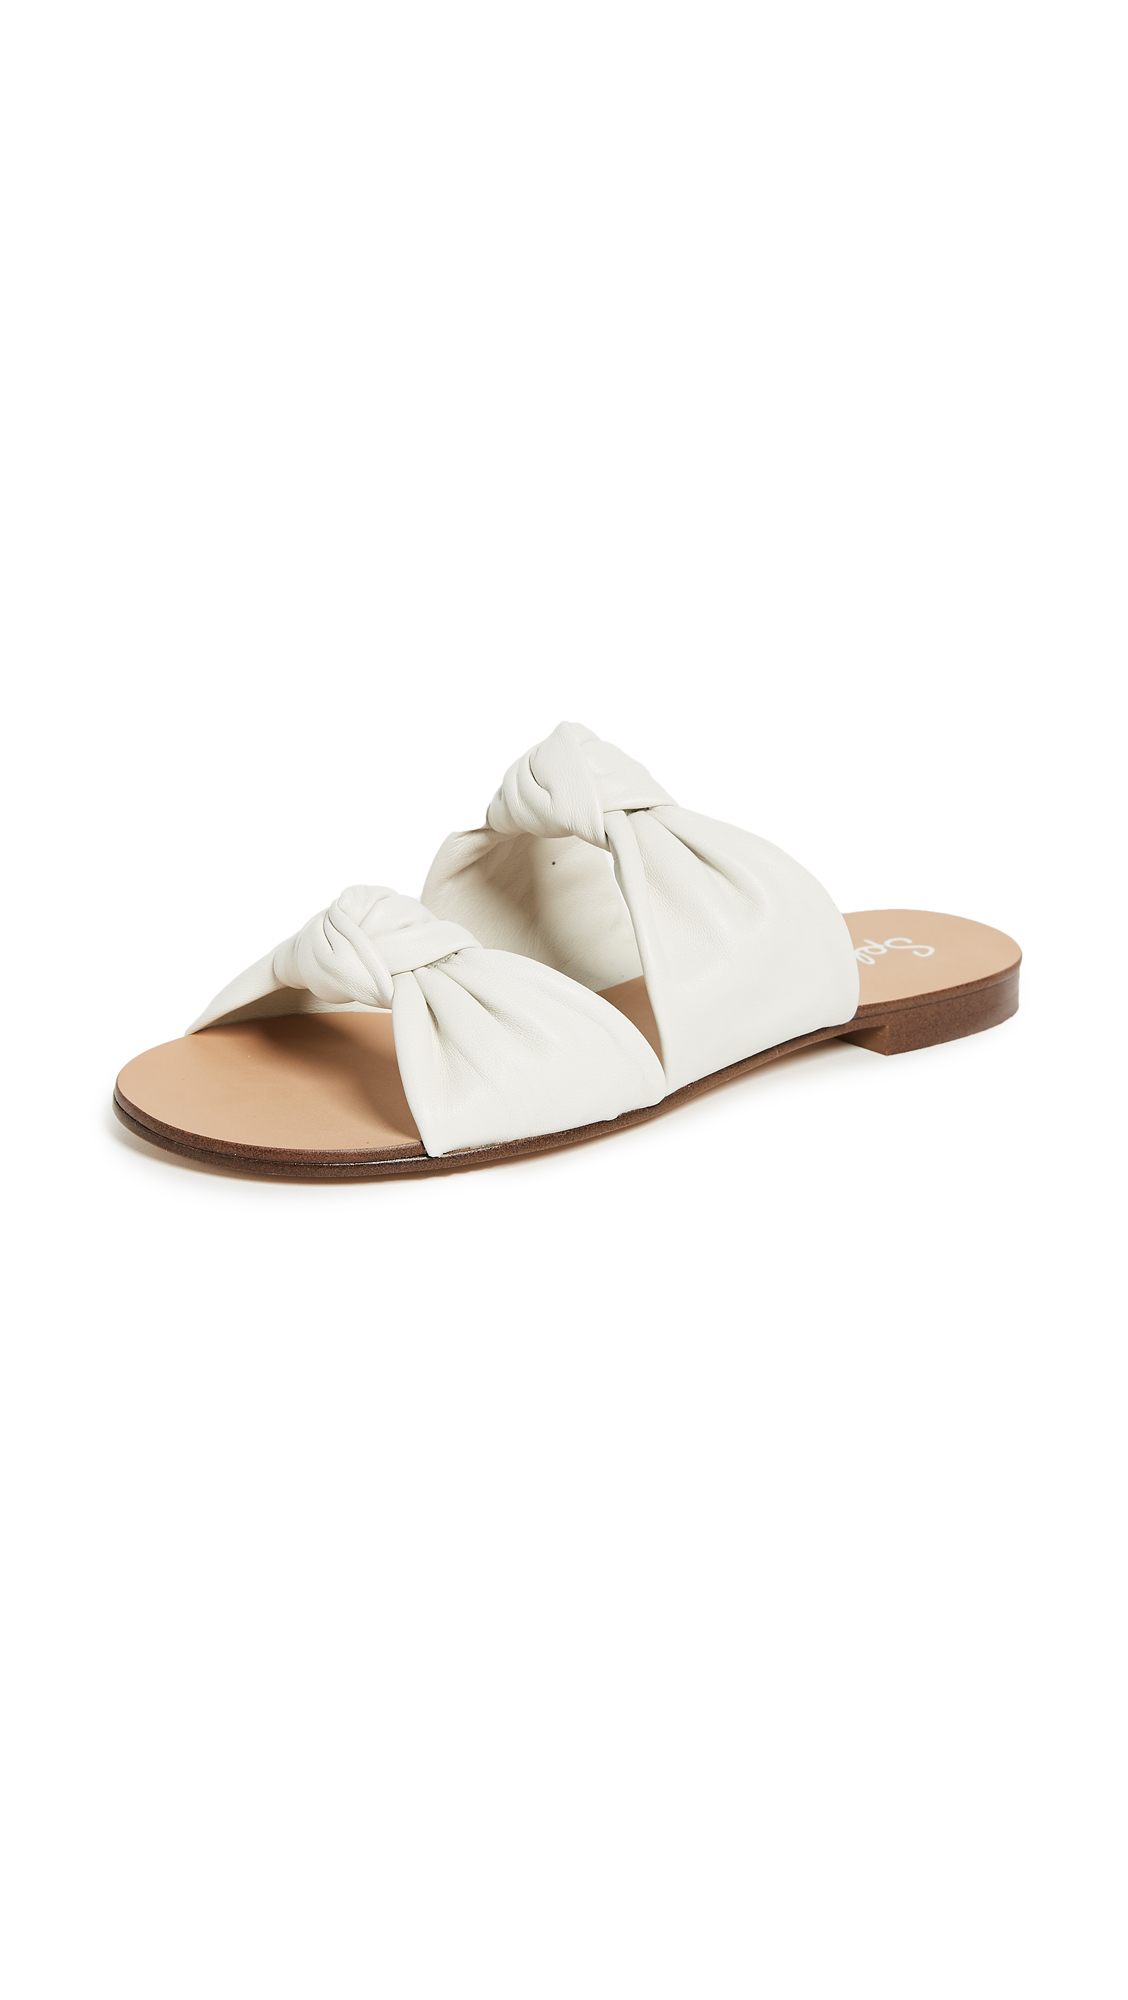 Splendid Barton Knotted Slides - Off White